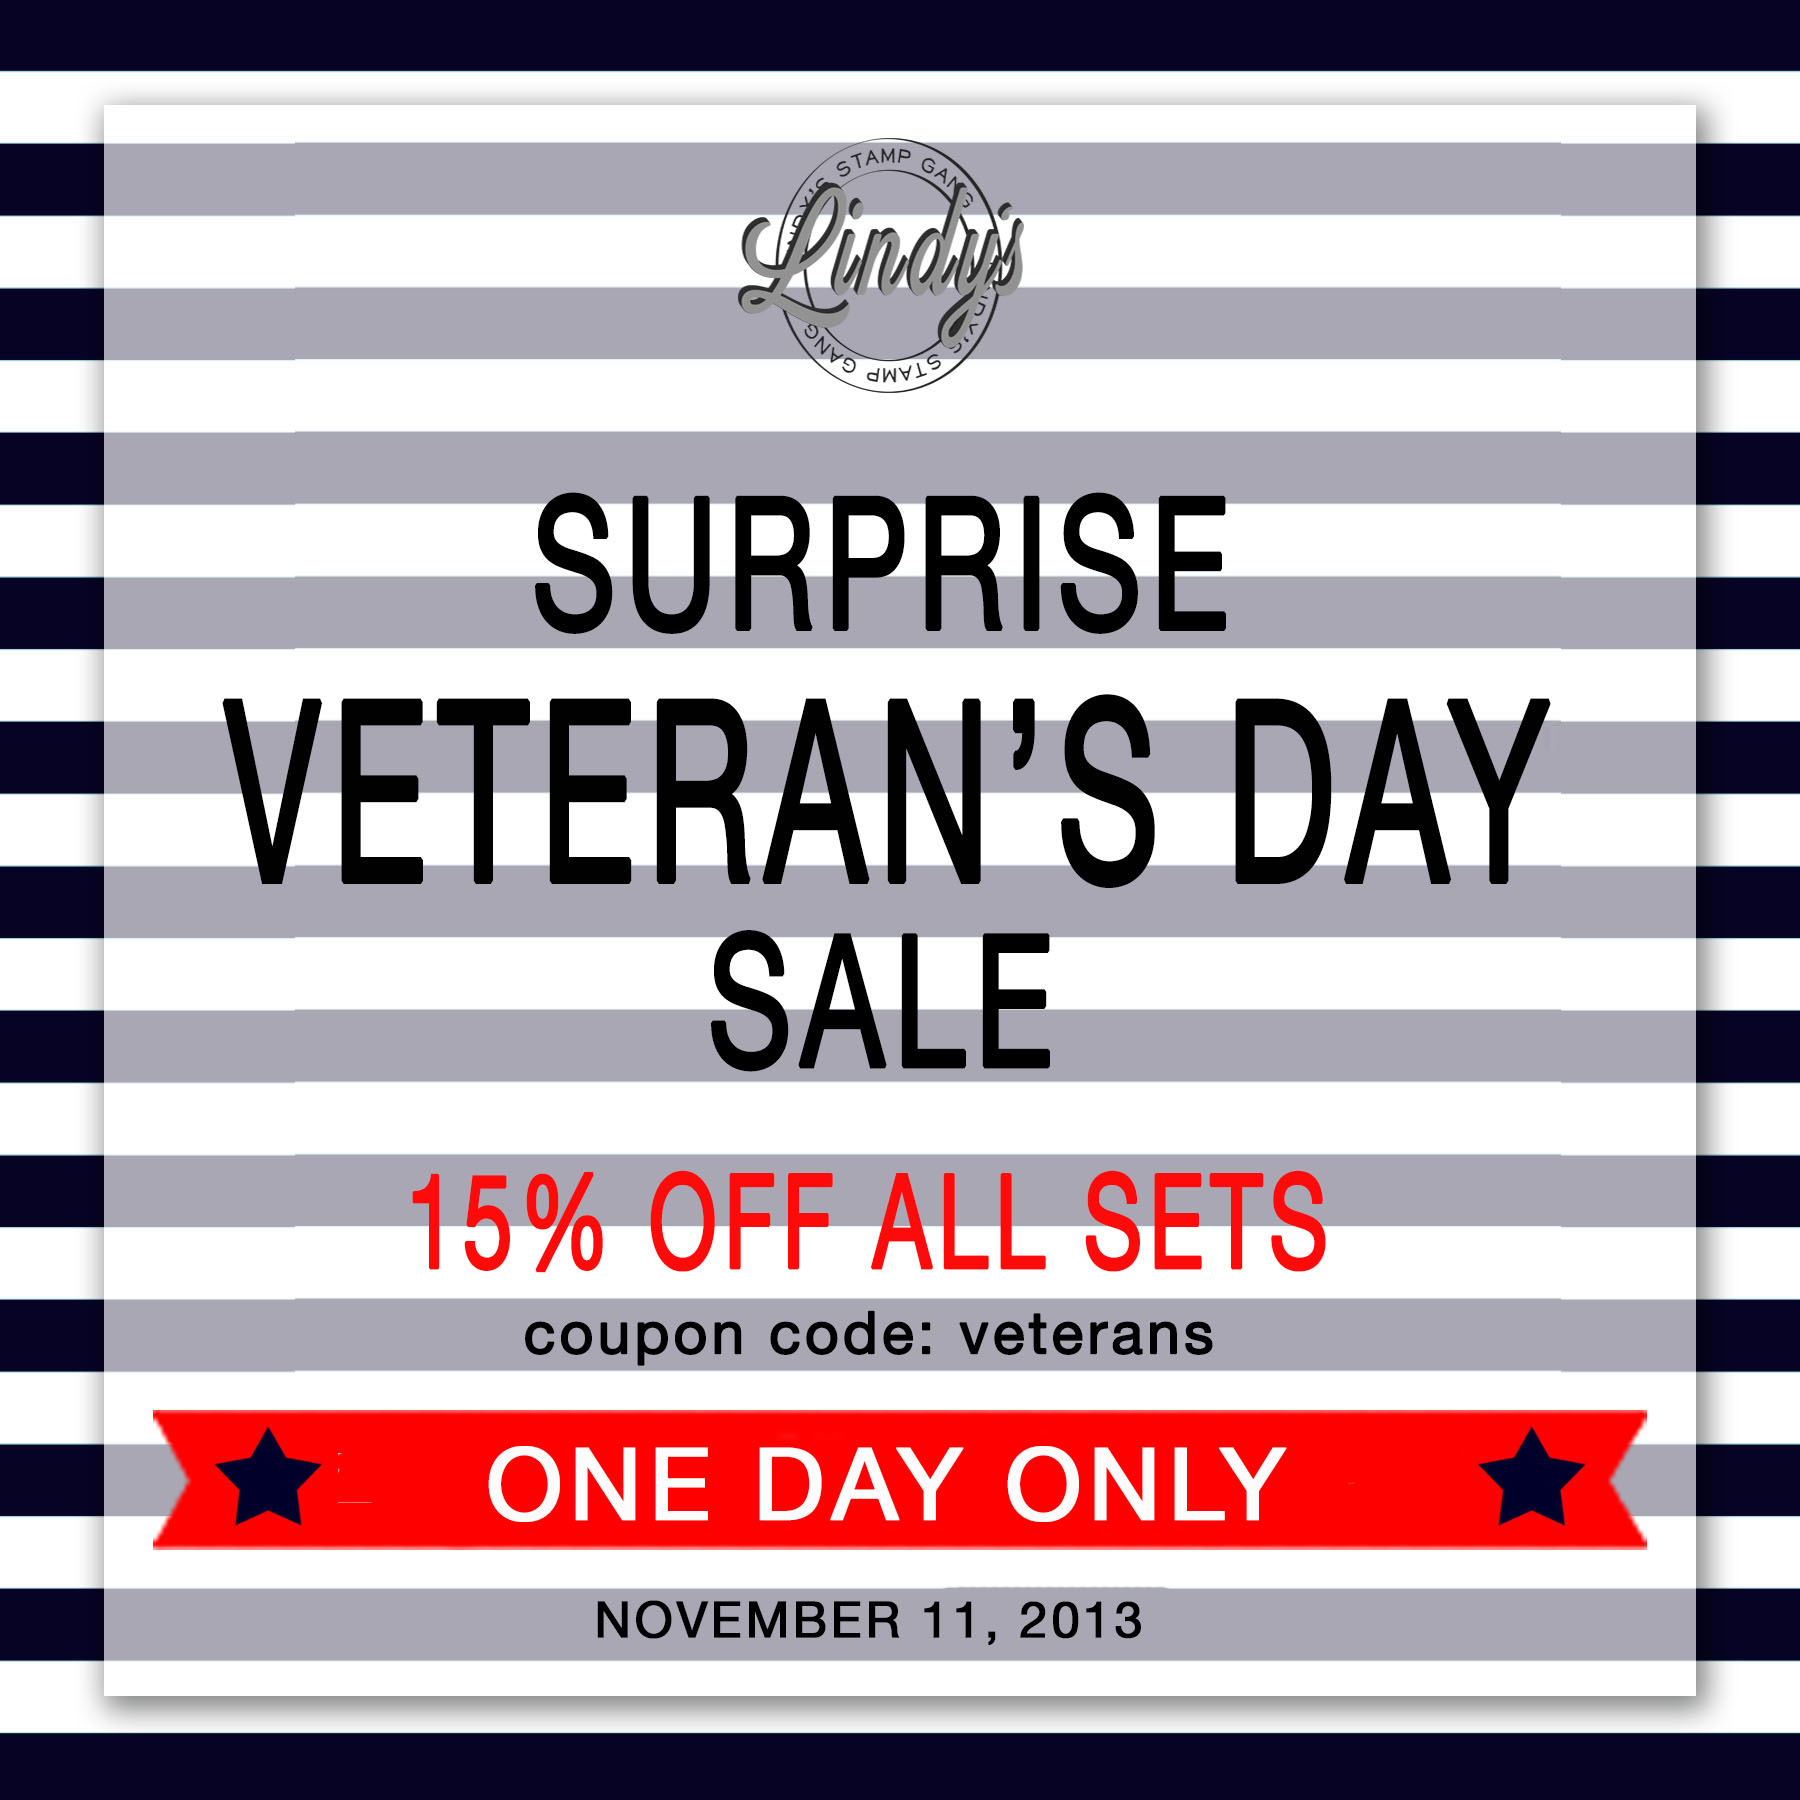 veterans day free meals discounts sales and deals 2014 veterans day